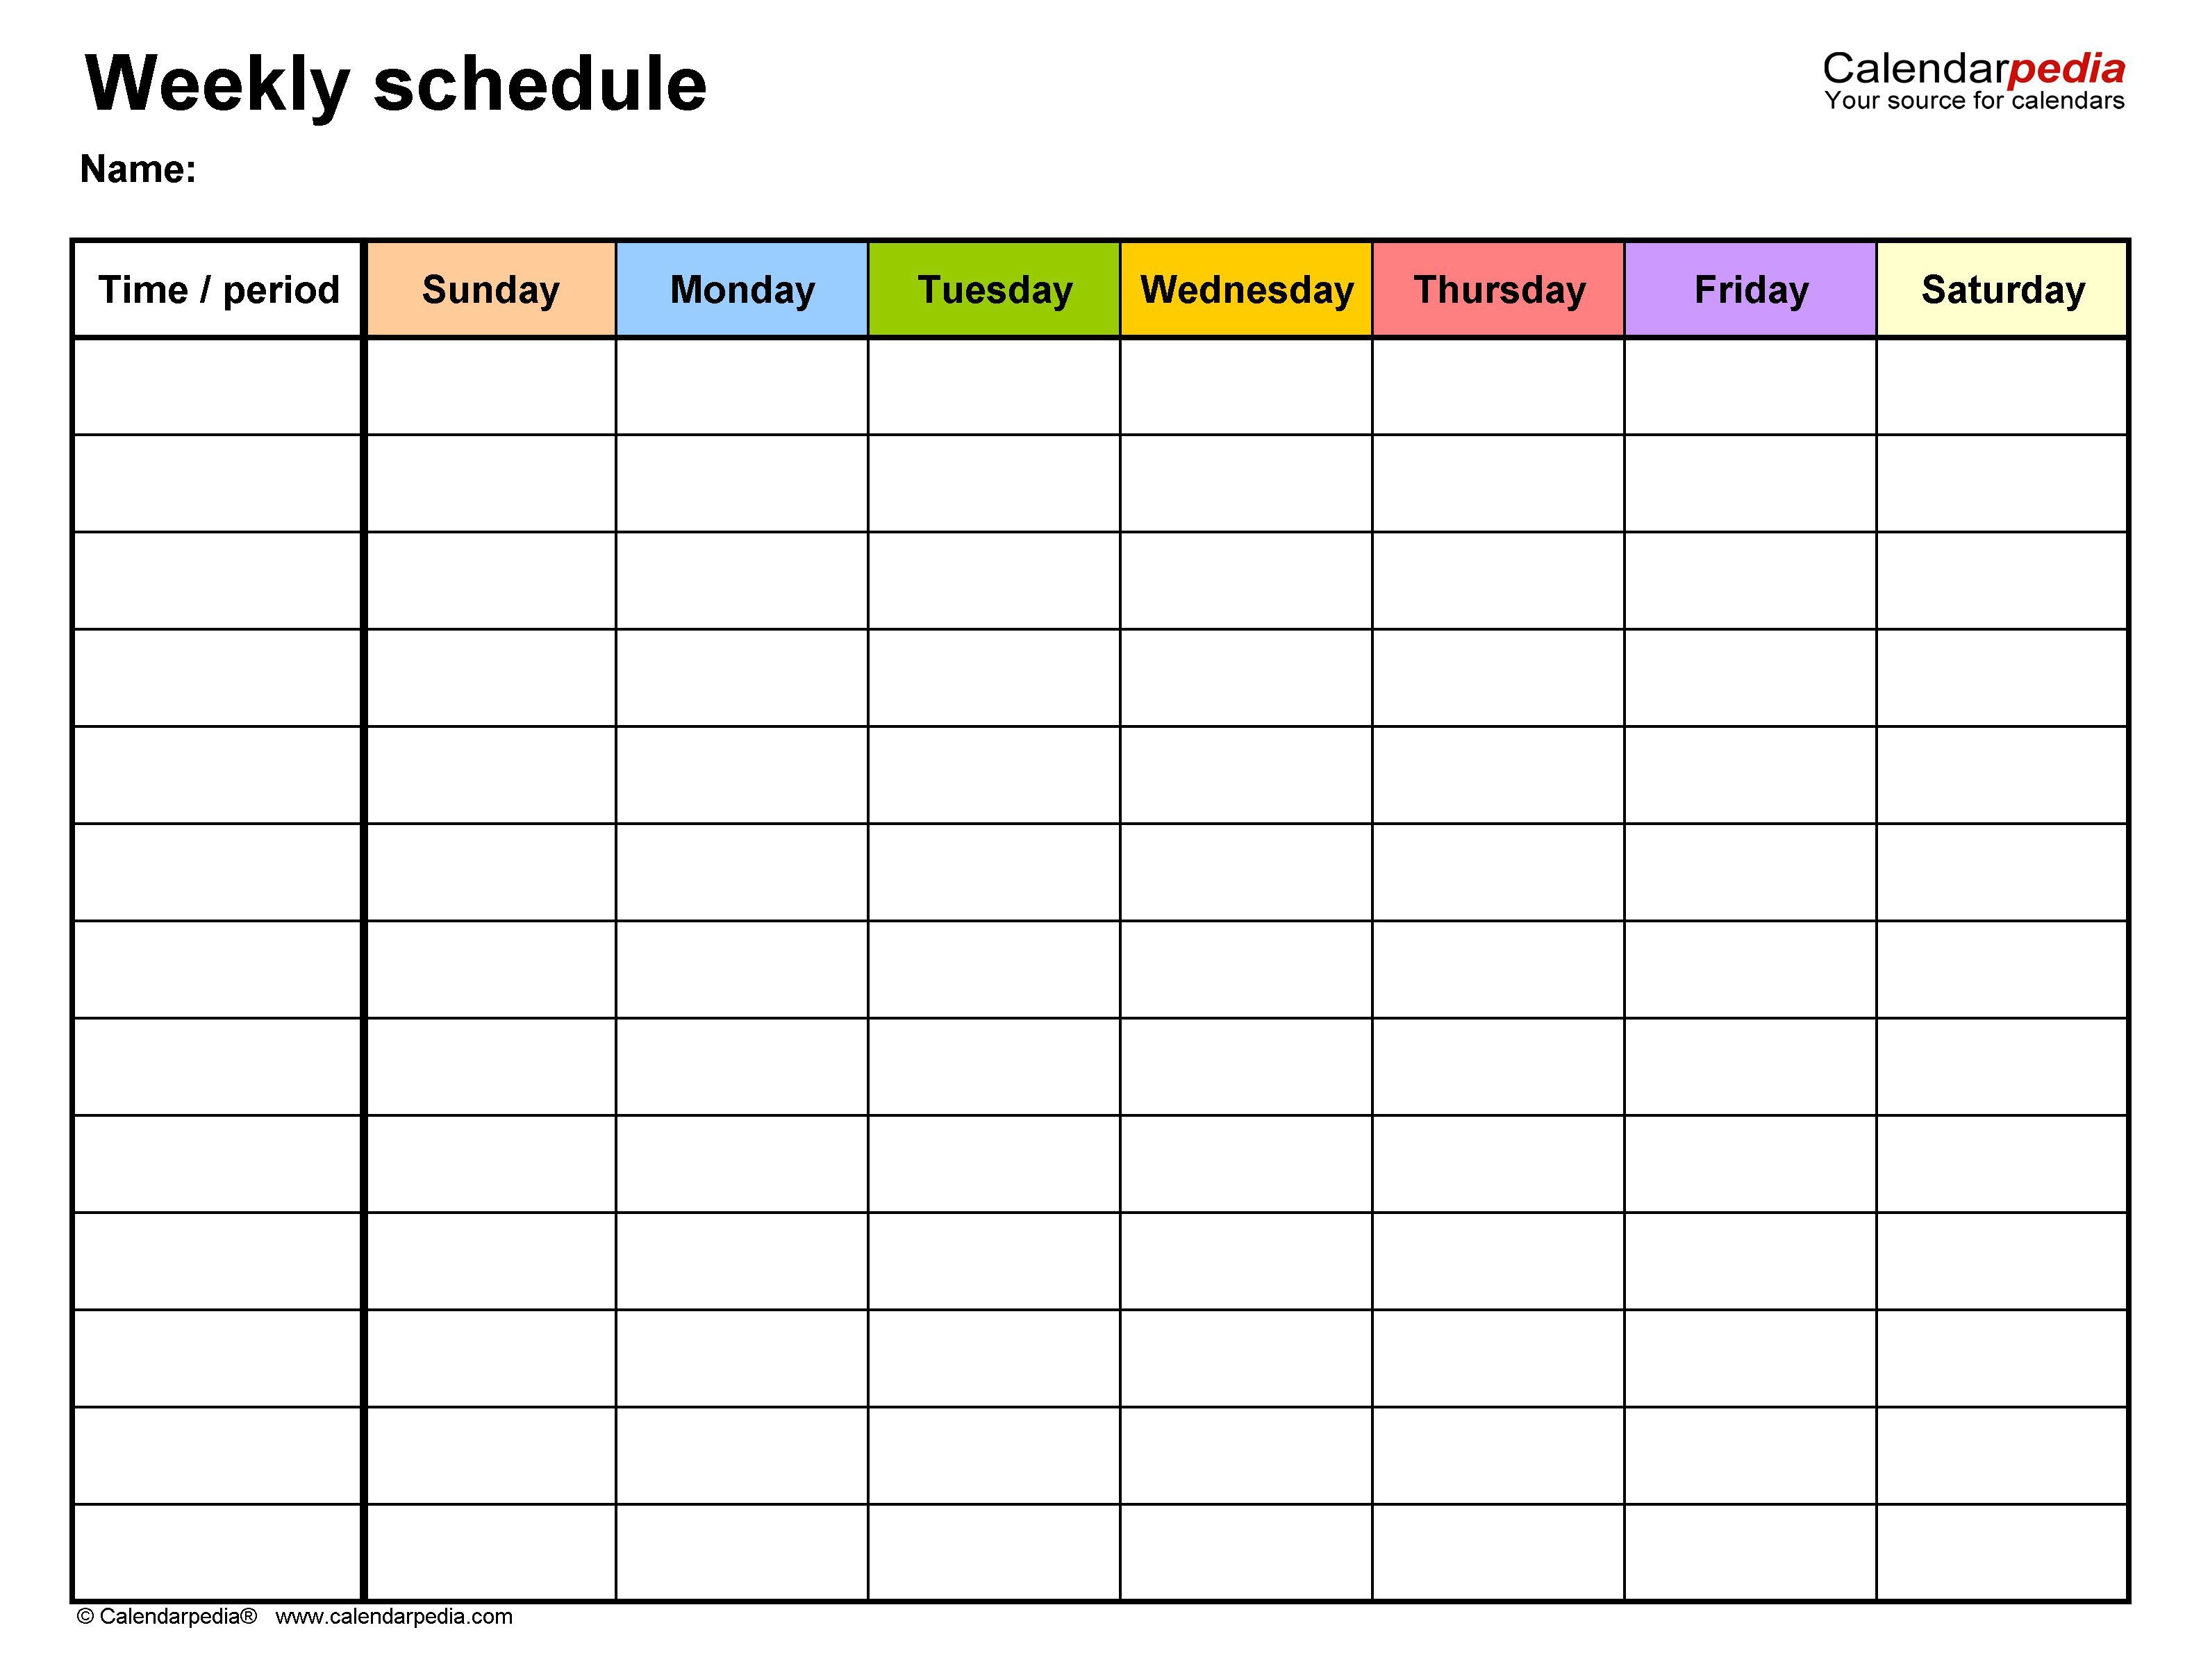 006 Top Weekly Schedule Template Pdf Image  With Time Study WorkFull